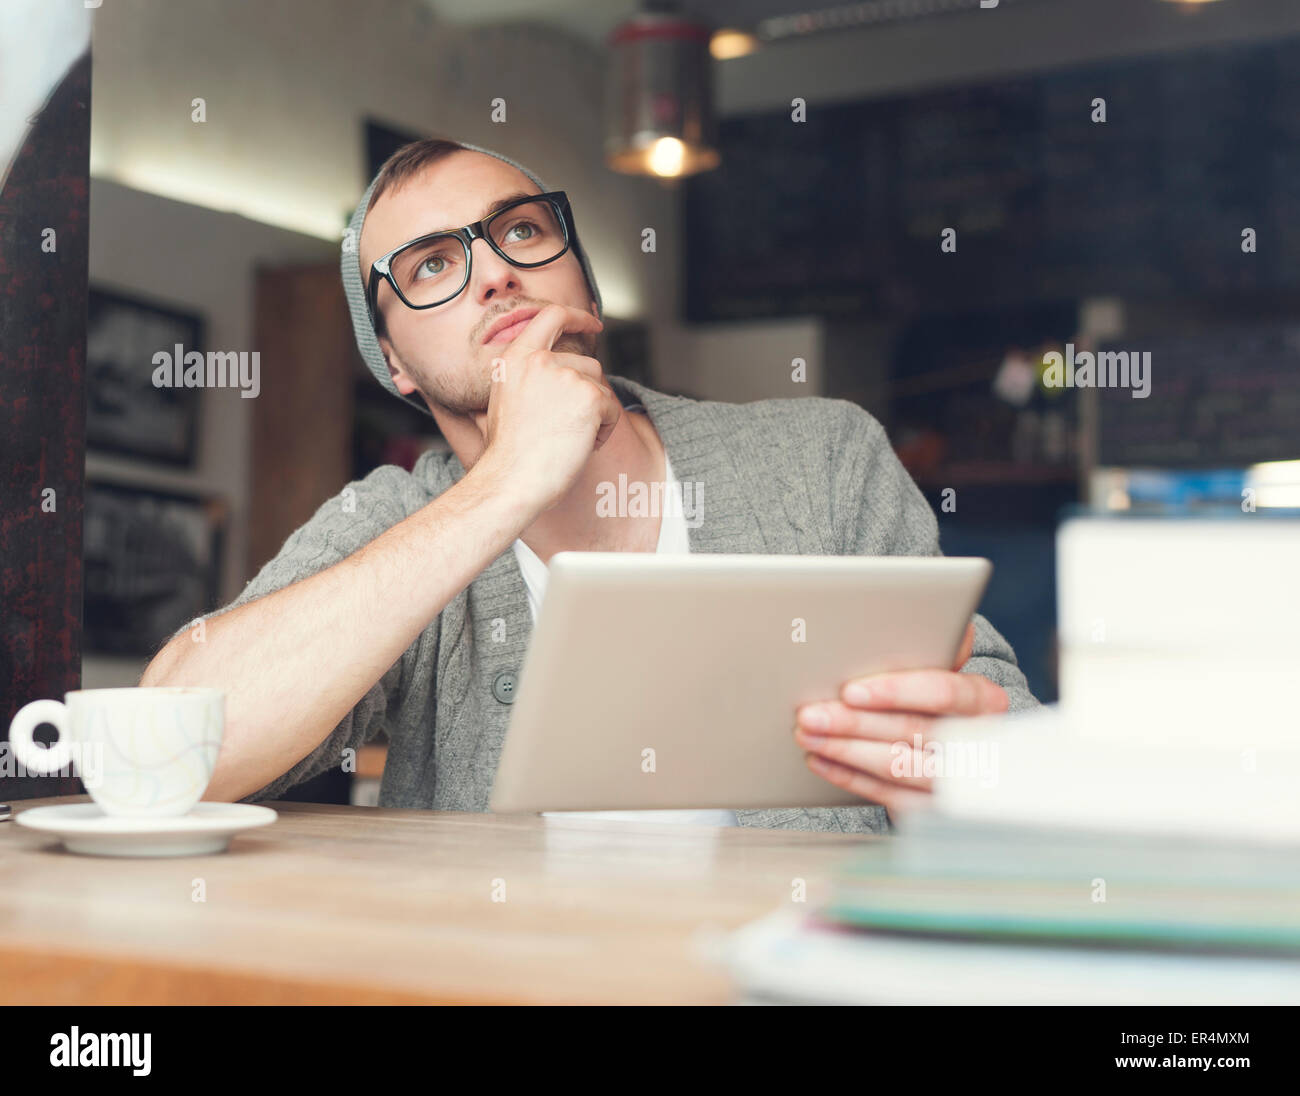 Dreaming man using digital tablet at cafe. Krakow, Poland - Stock Image